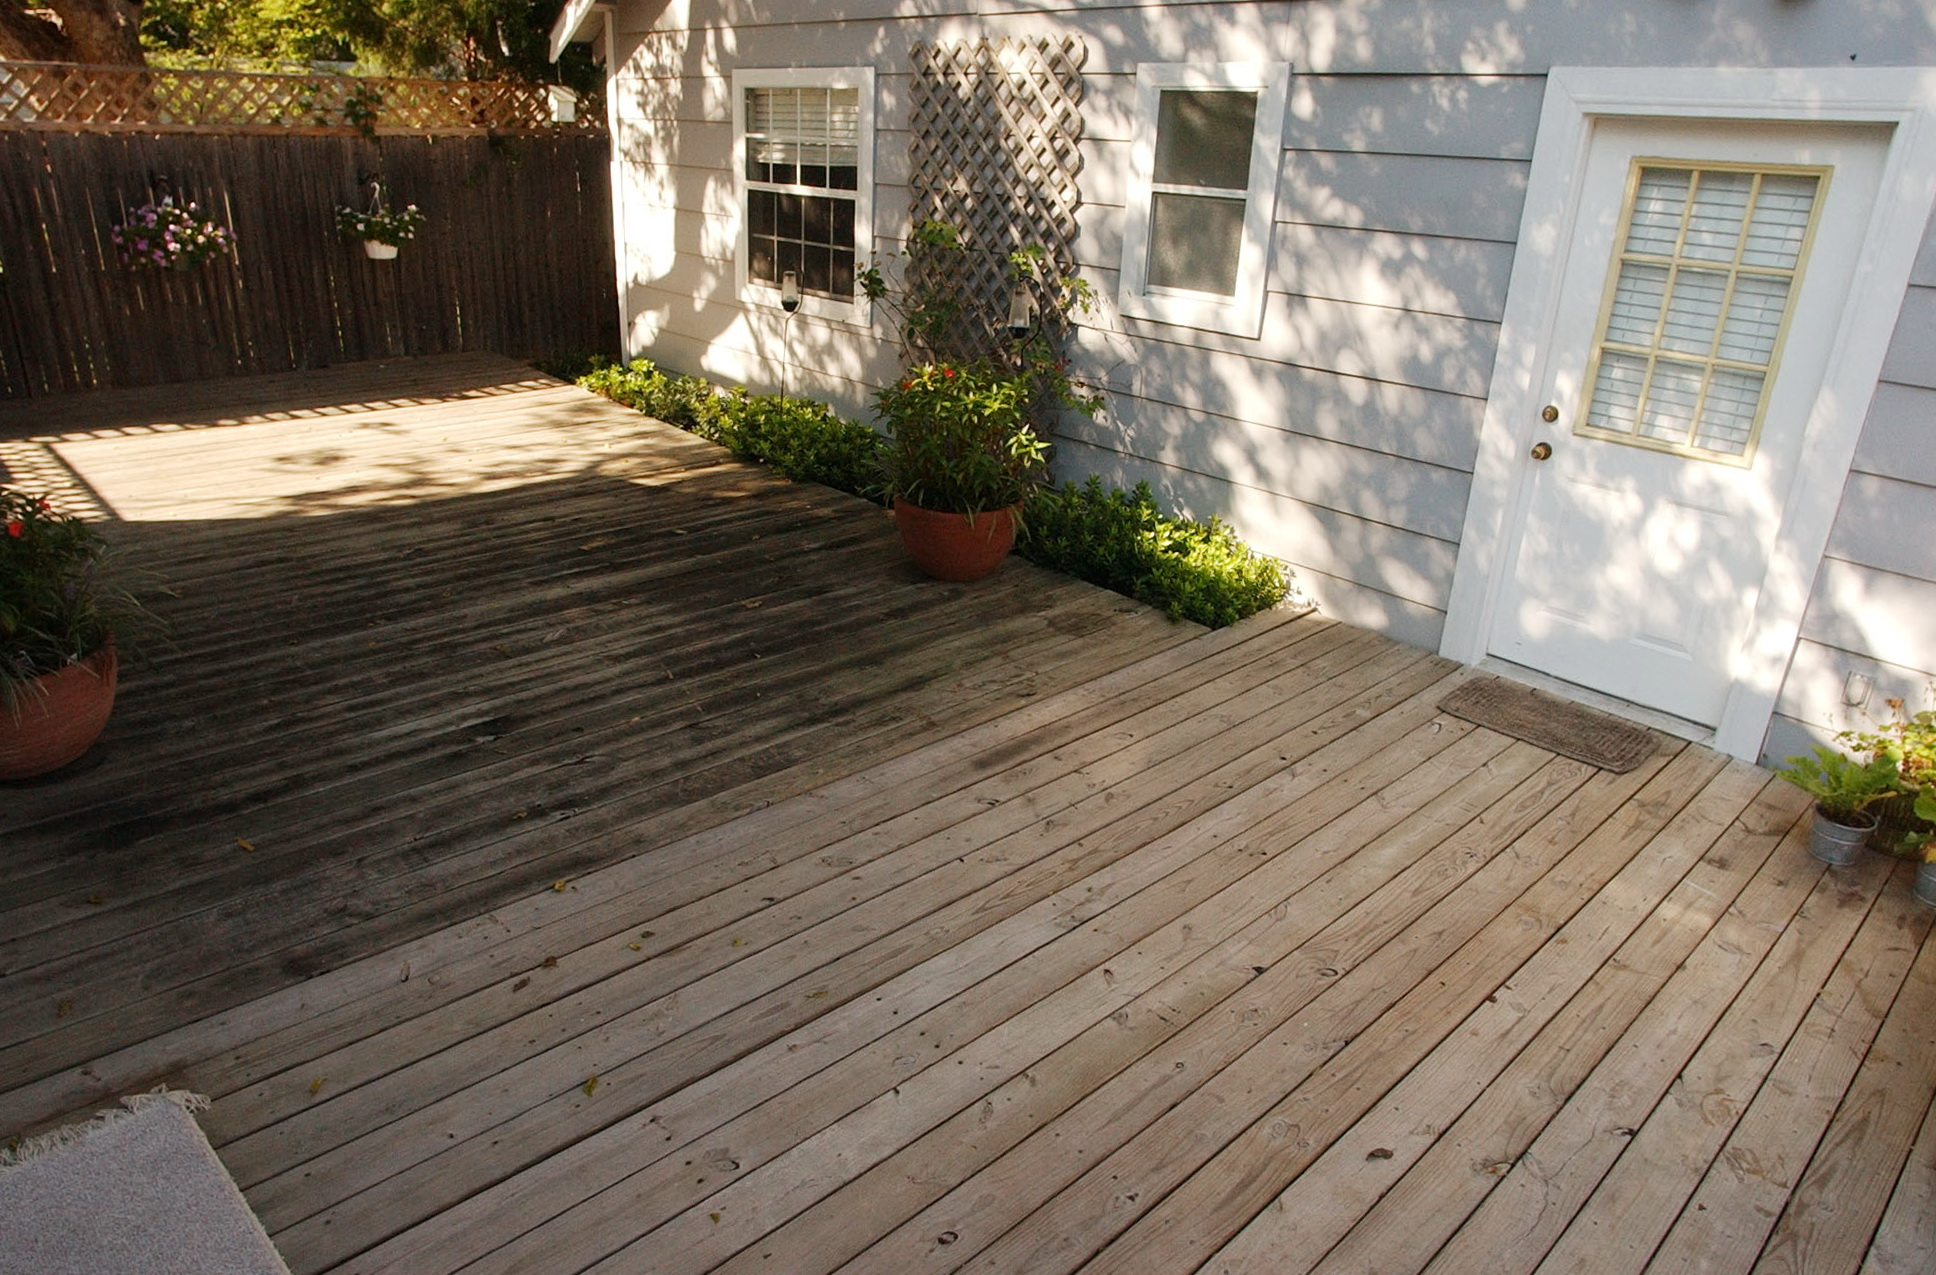 Diy Deck Cleaner Wood Deck Cleaner Homemade Home Design Ideas